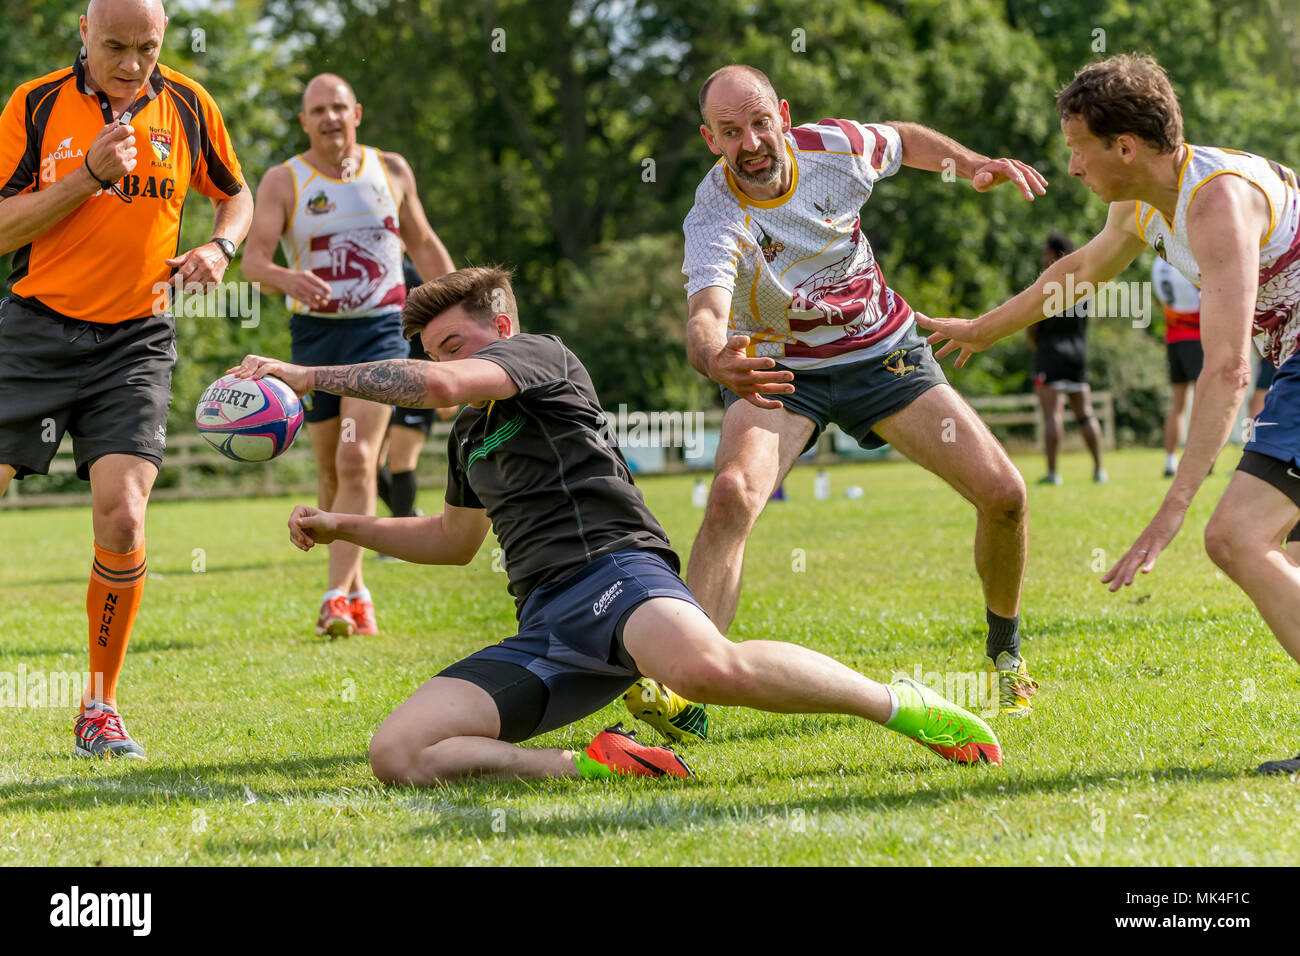 Amateur rugby touch tournament - players scoring a try with tacklers and referee close by - Stock Image